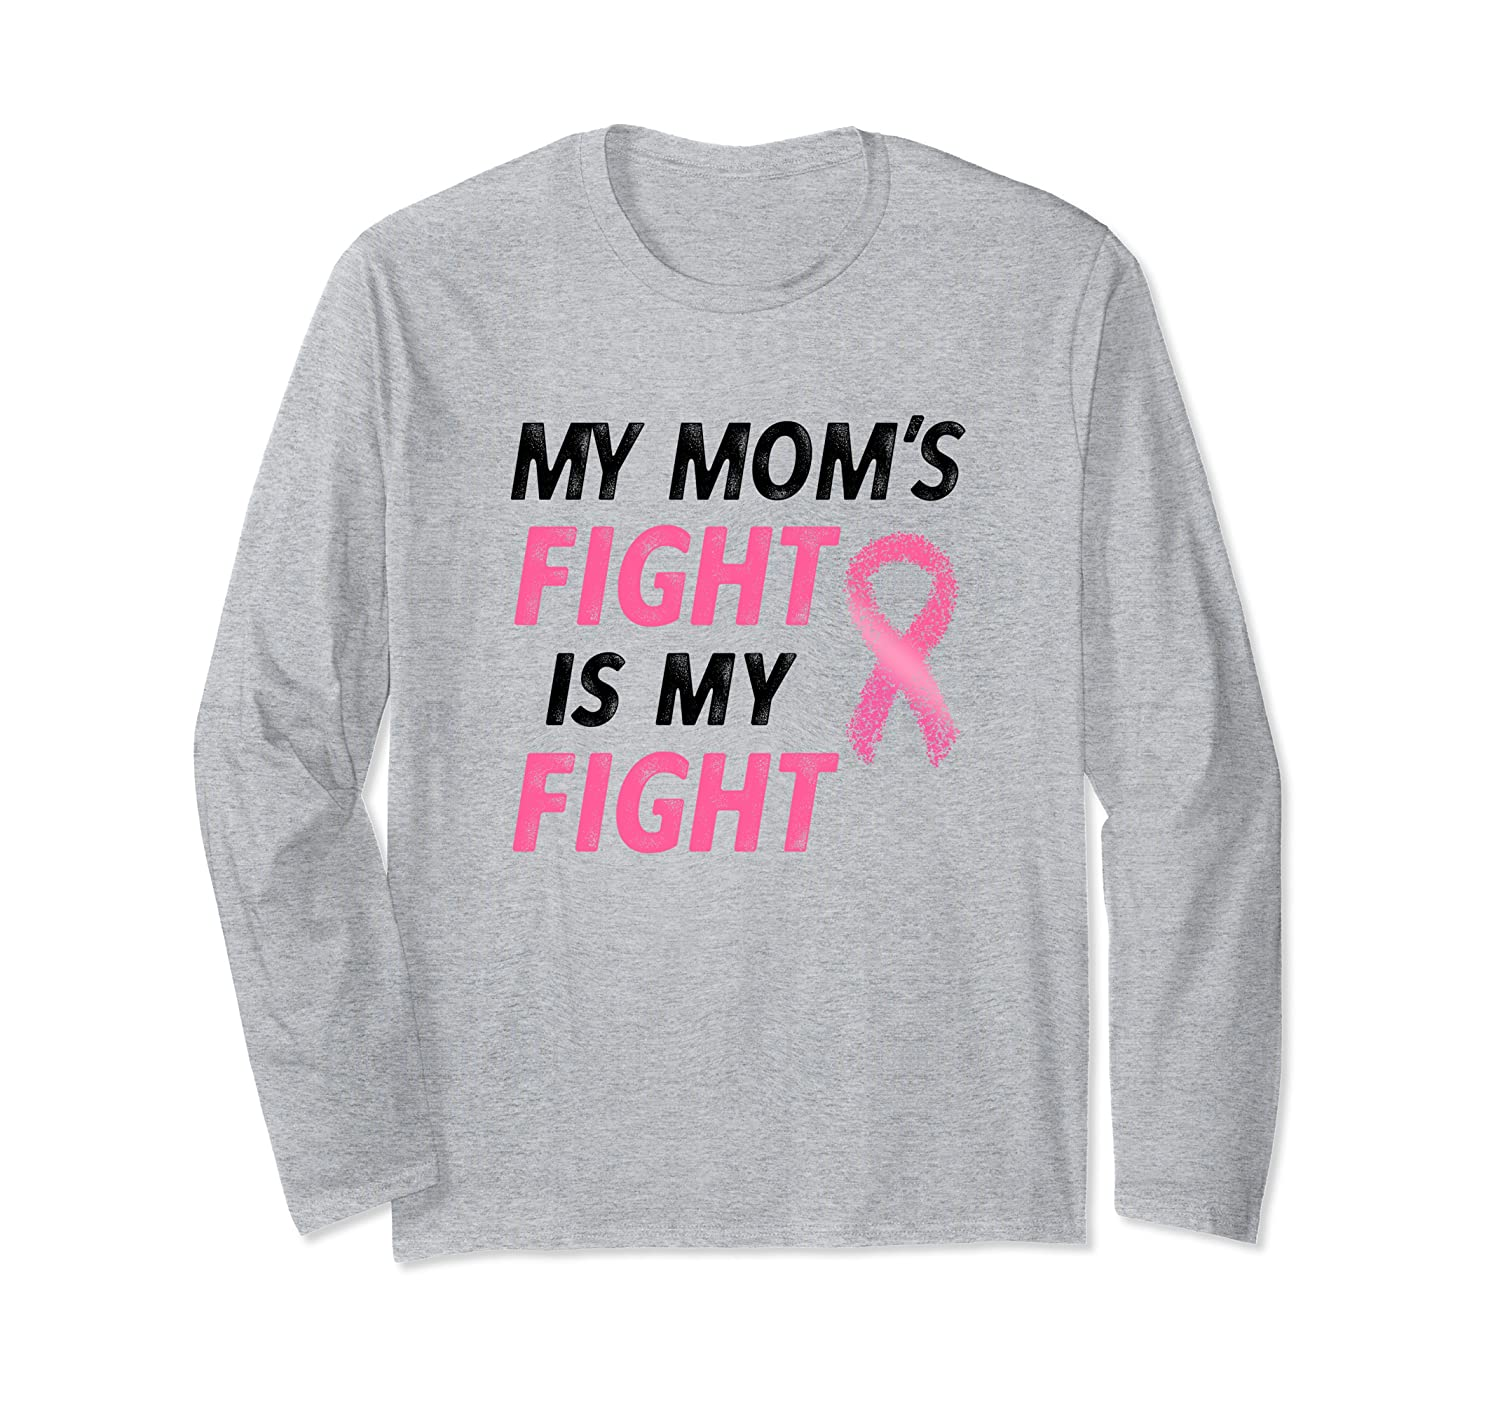 Breast Cancer Awareness Month Quote Gift For Family Support T Shirt